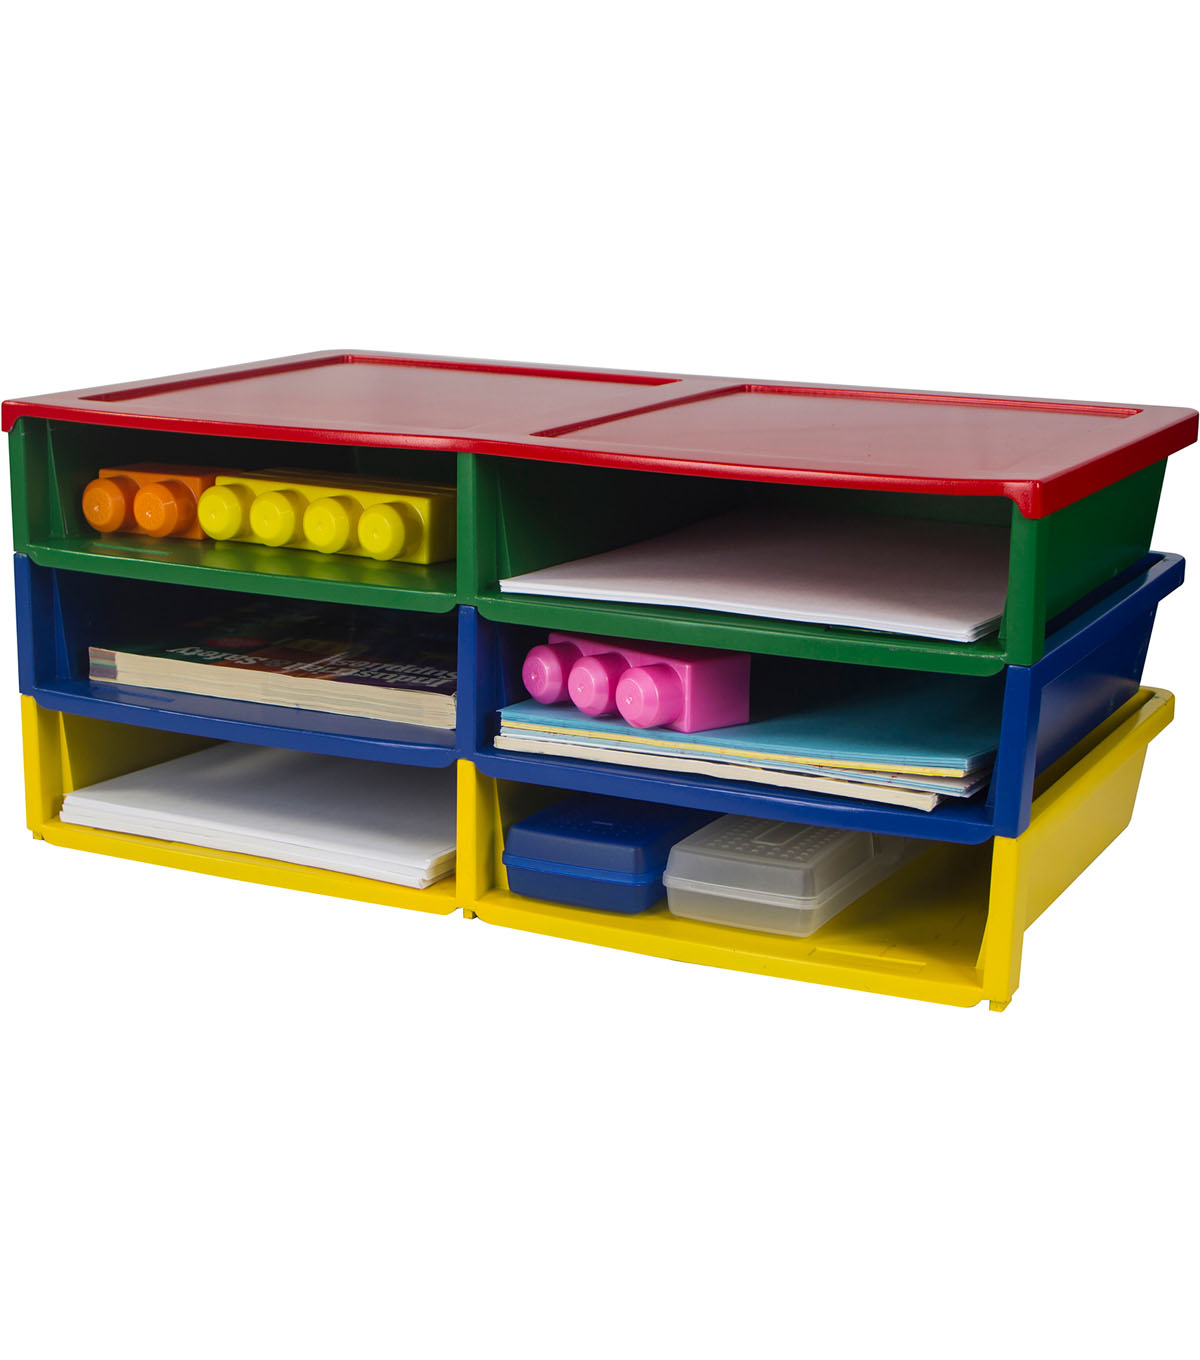 Storex Quick Stack Literature Organizer-Multicolored